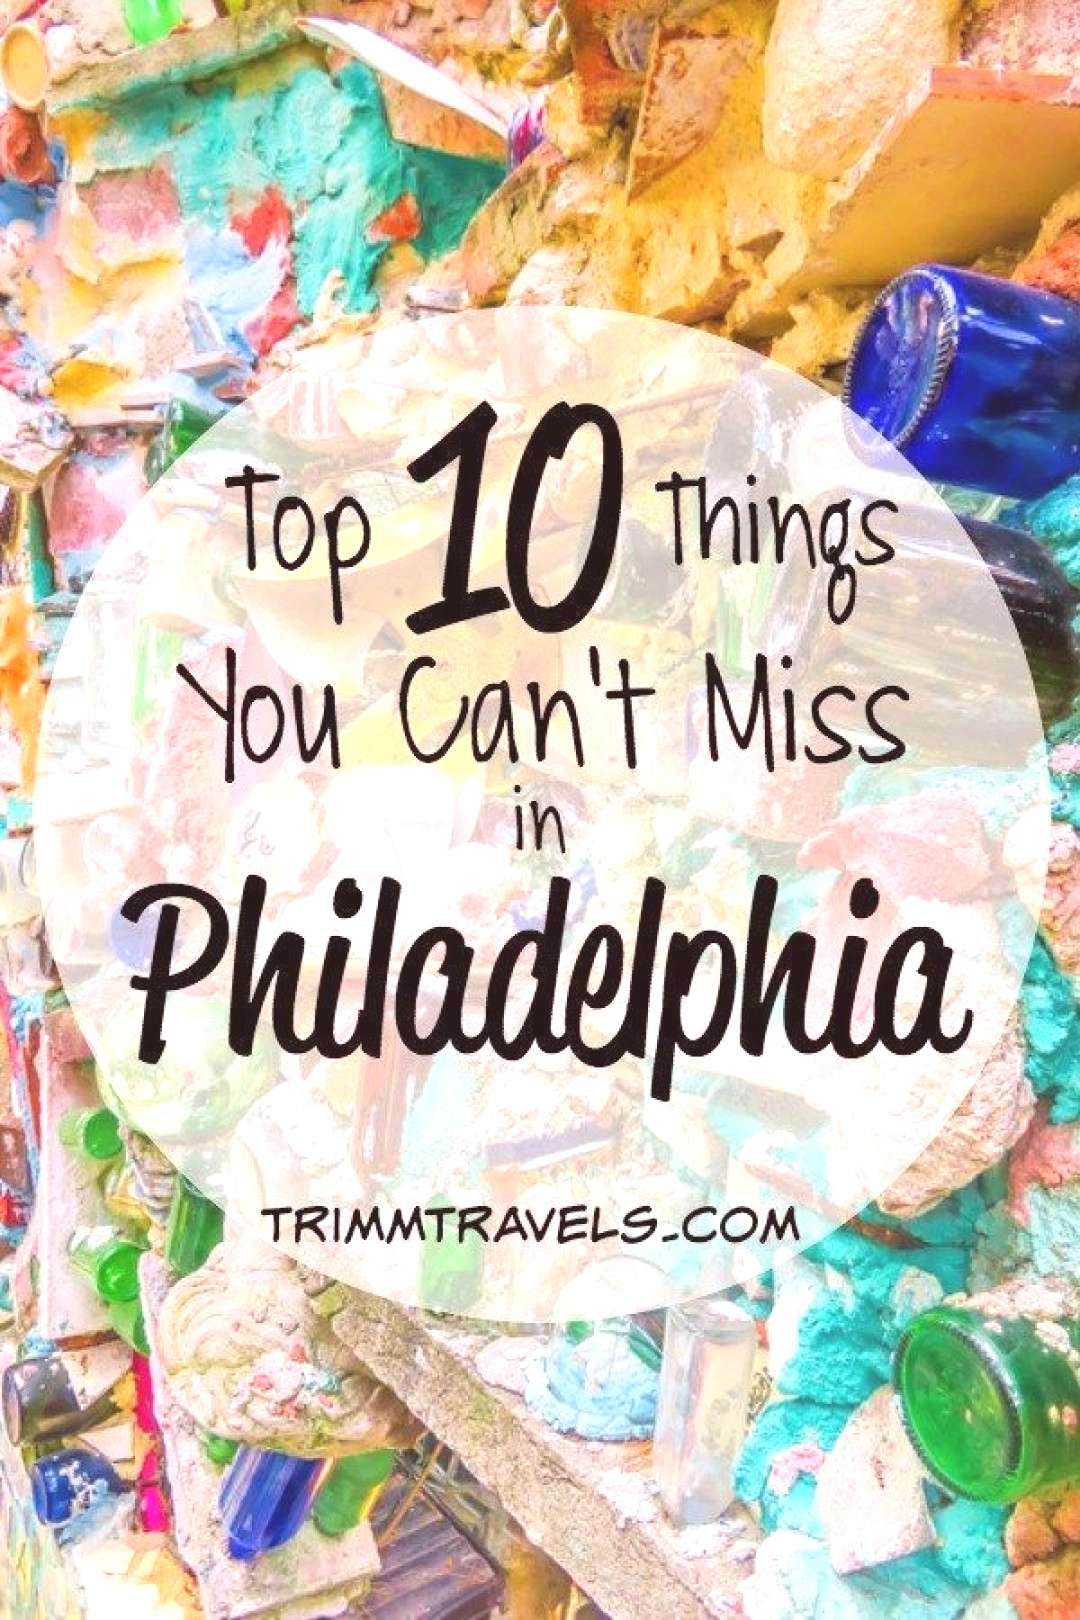 Top 10 Things You Can't Miss in Philadelphia Historical, picturesque, and cultural is how I would d